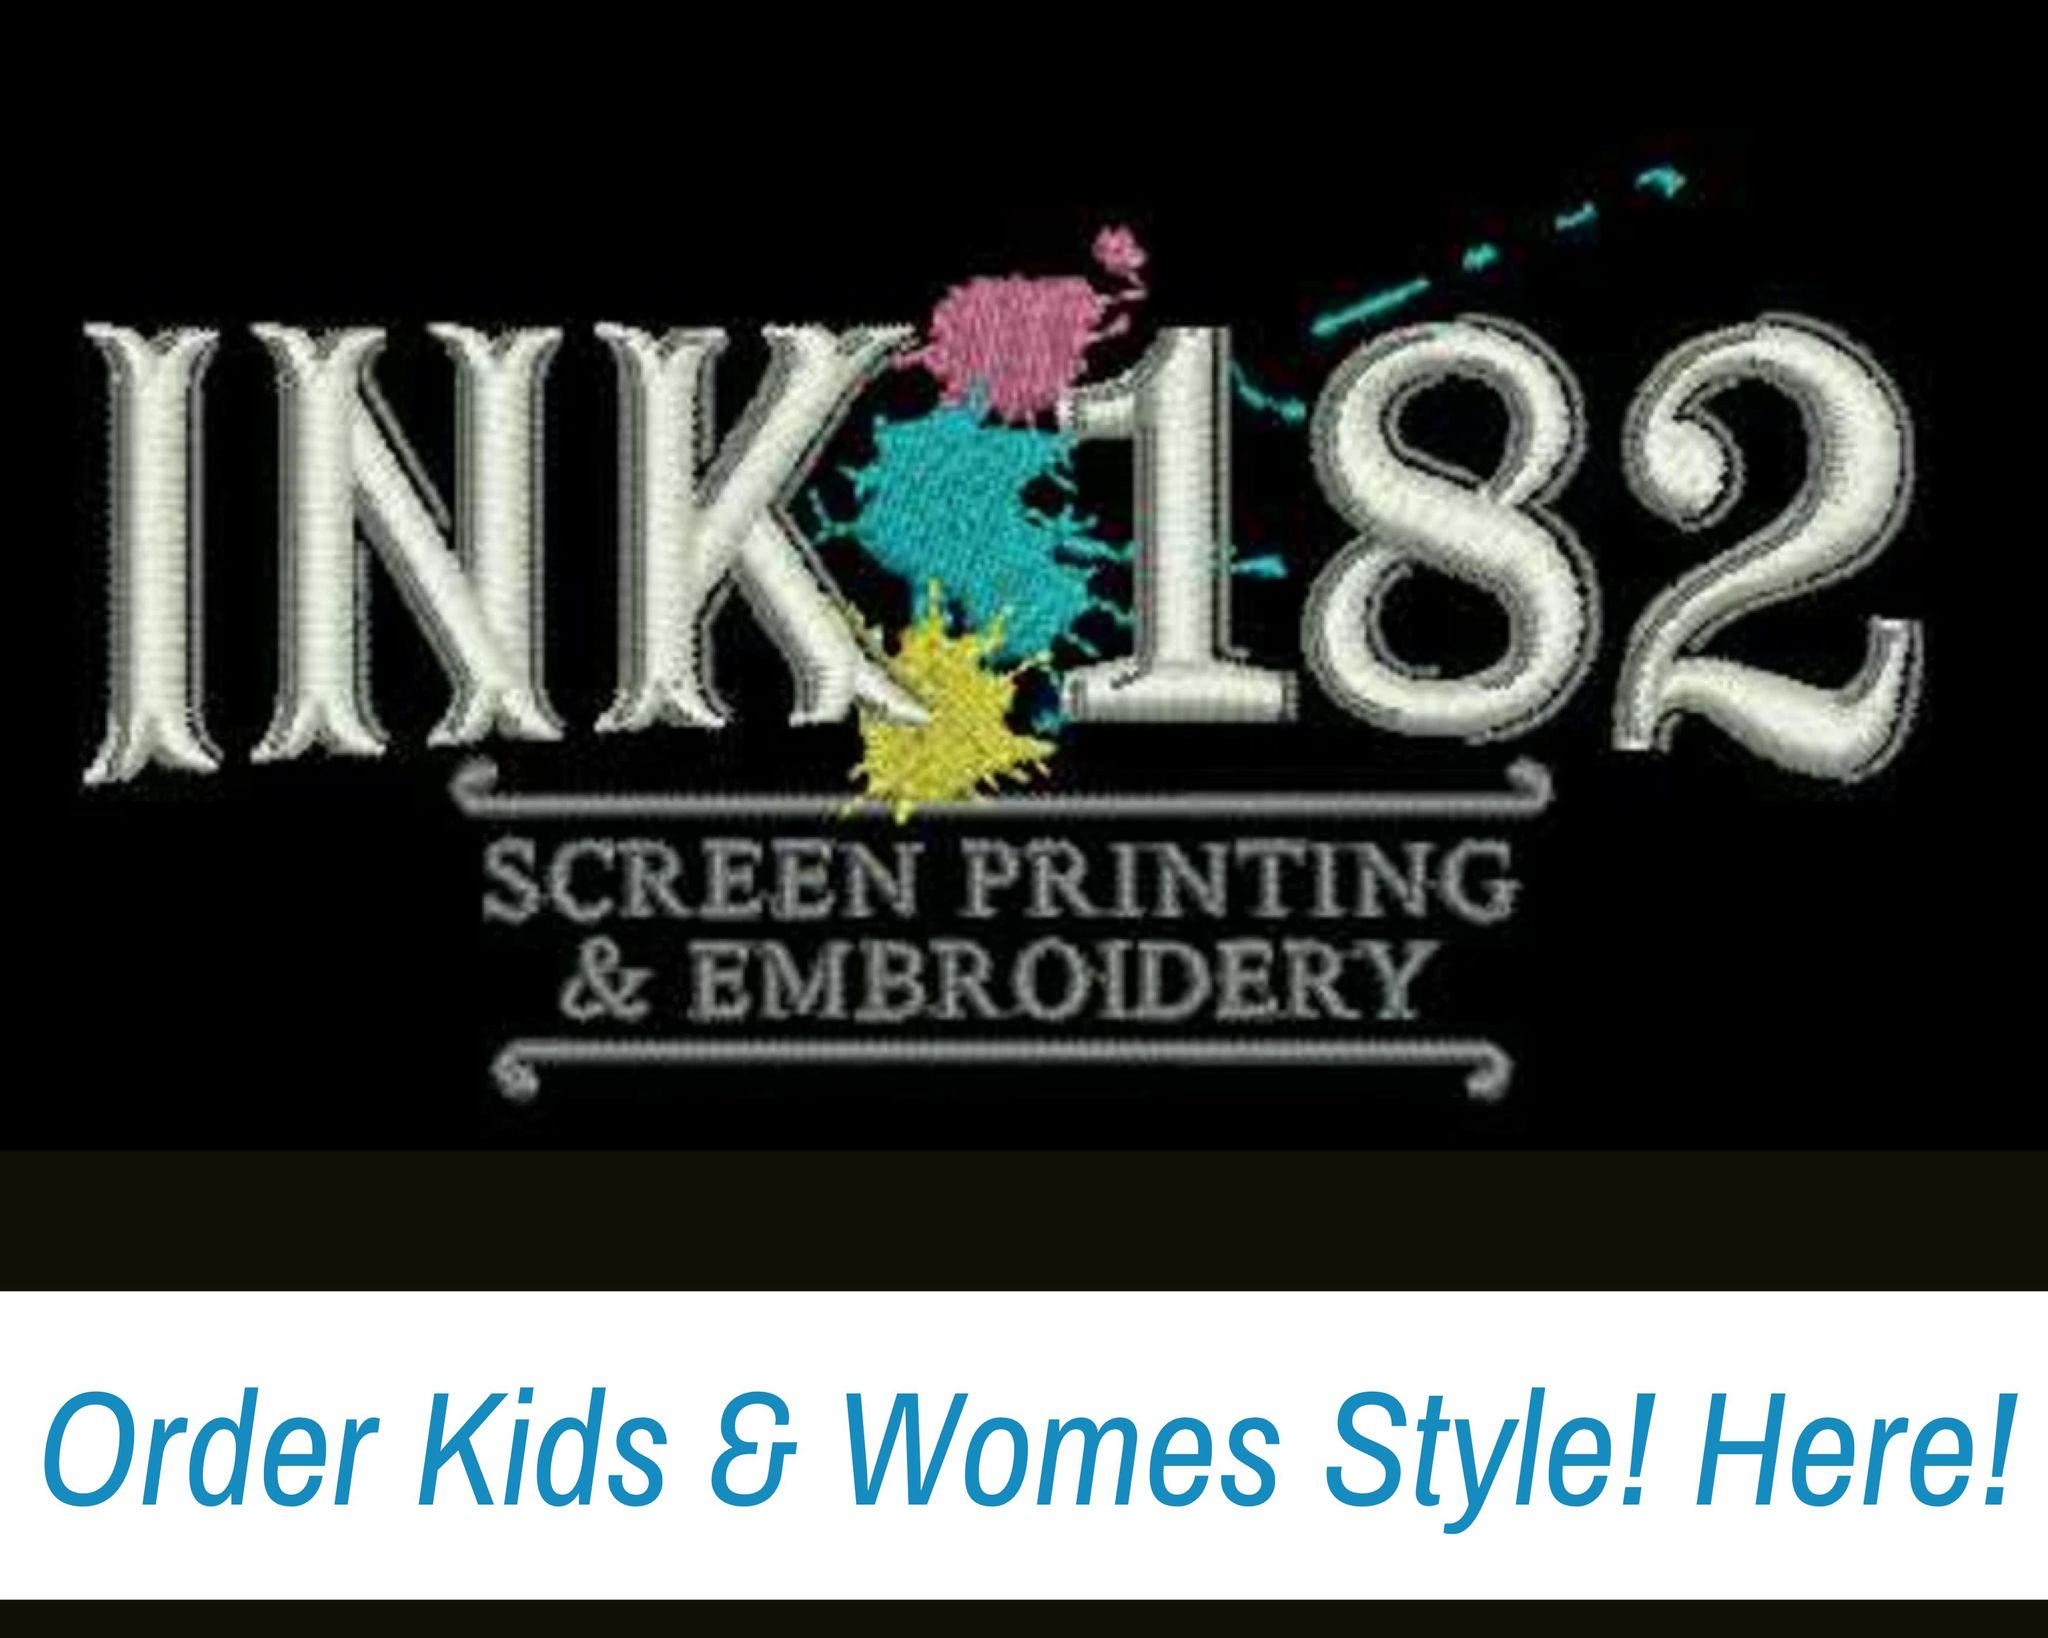 Order Kids & Womens Style Here!